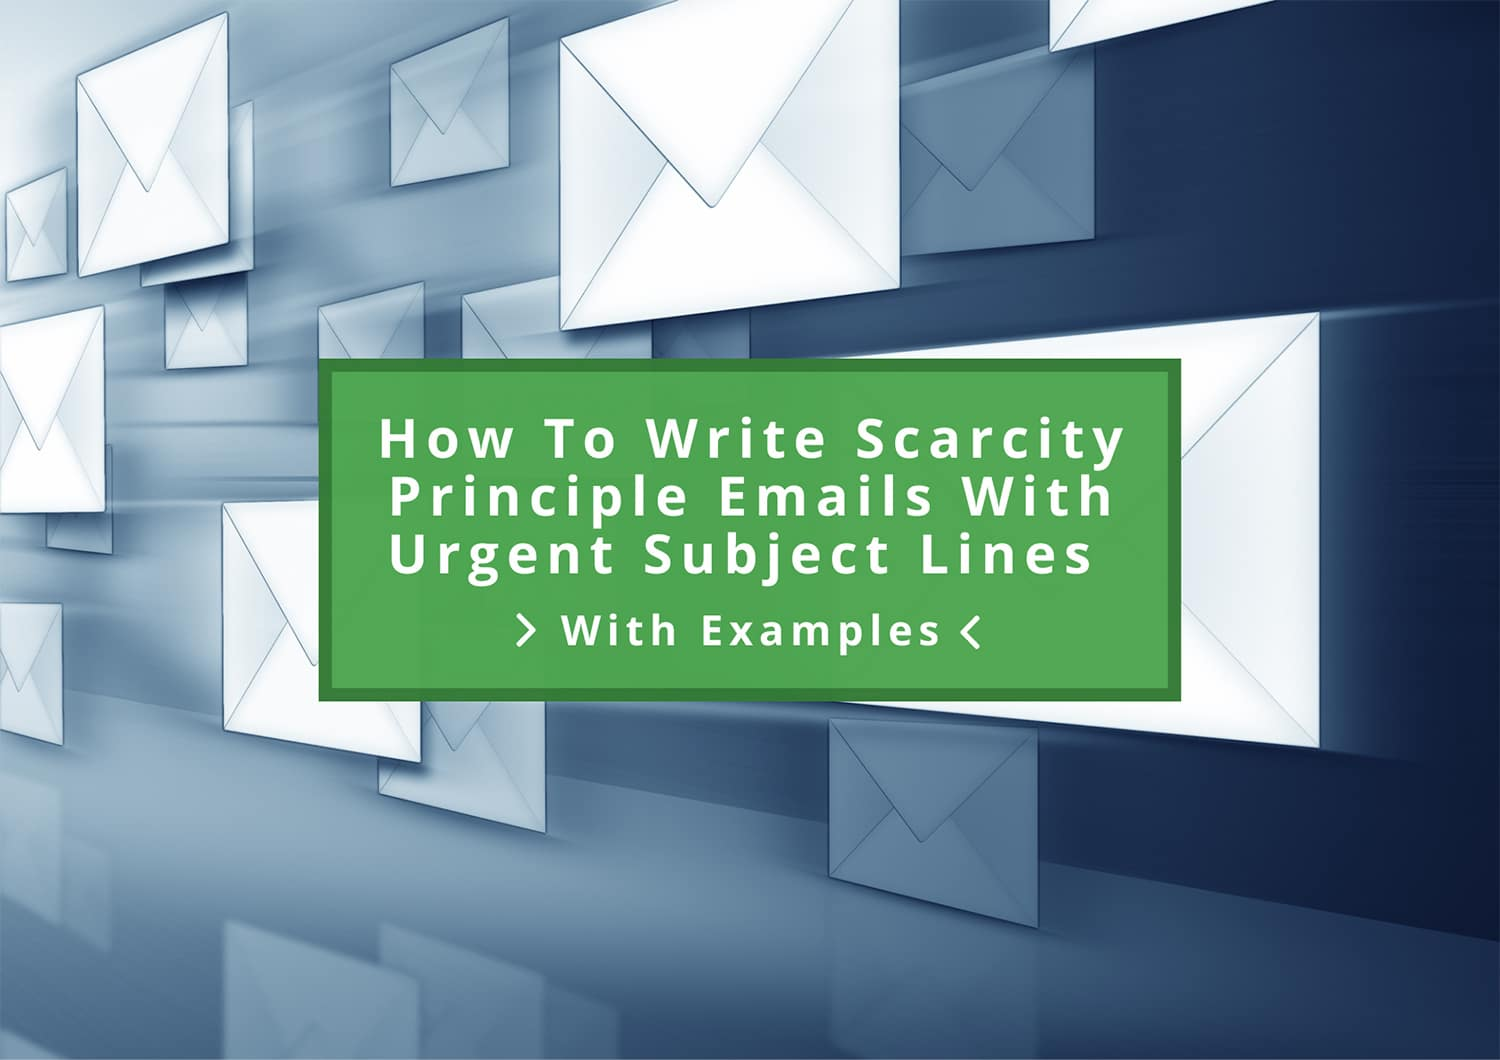 How To Write Scarcity Principle Emails With Urgent Subject Lines [Examples]